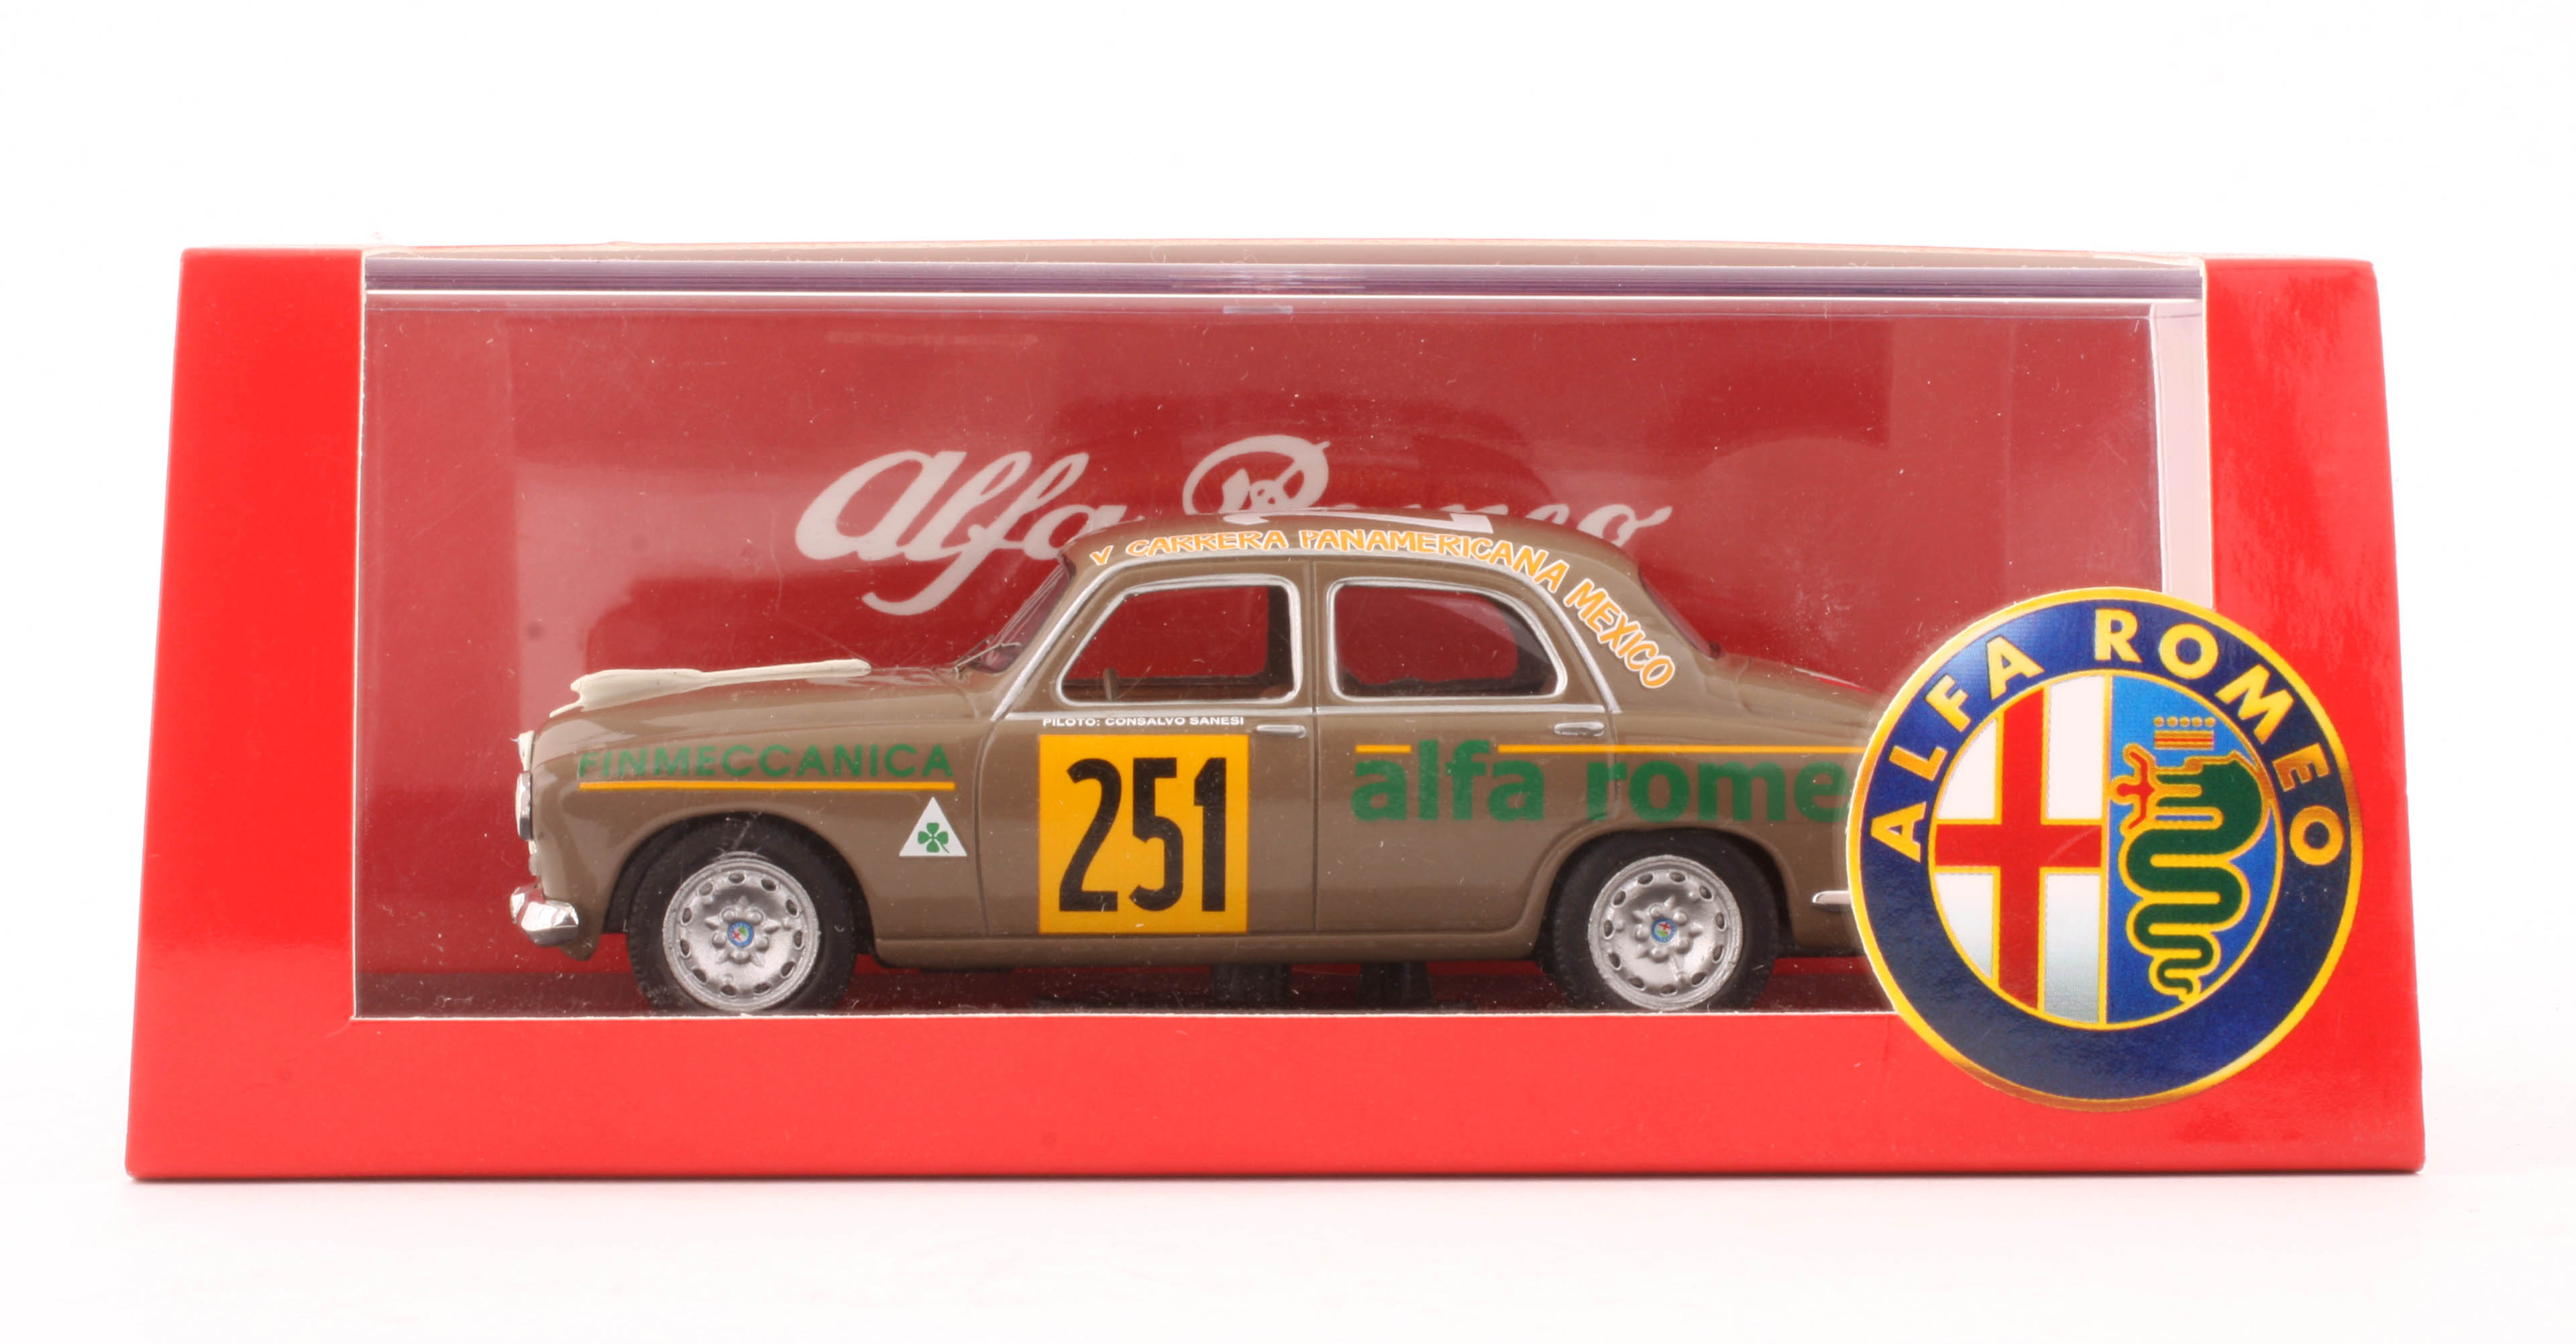 1:43 M4 – Alfa Romeo 1900 – 1954 Carrera Messicana – Sanesi-Cania Diecast Model Car